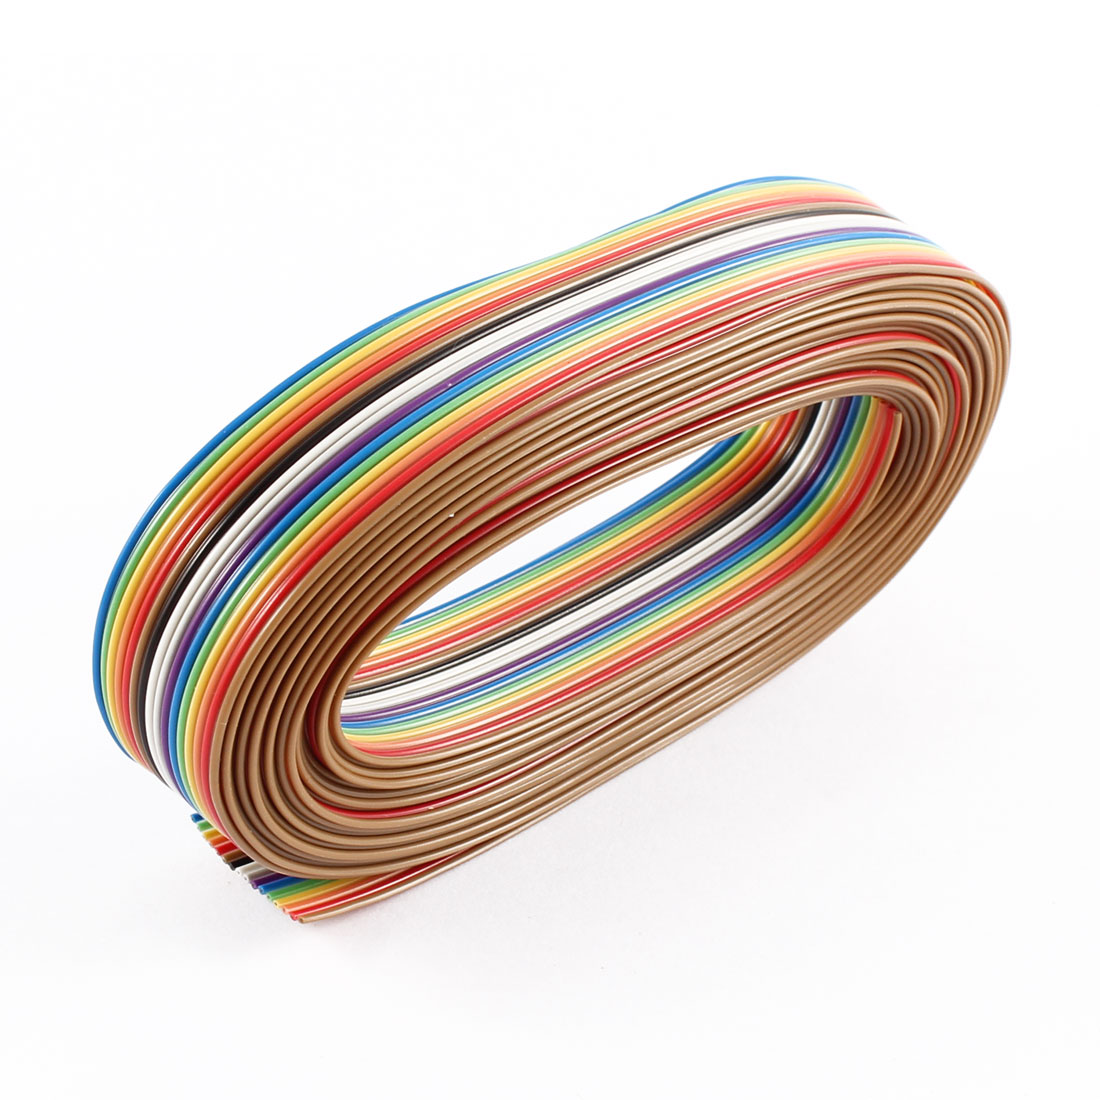 UXCELL 13Ft 4M Length 16 Way 16 Pin Rainbow Color Flat Ribbon Cable Idc Wire 1.27Mm Spacing Diy For Clean Terminations